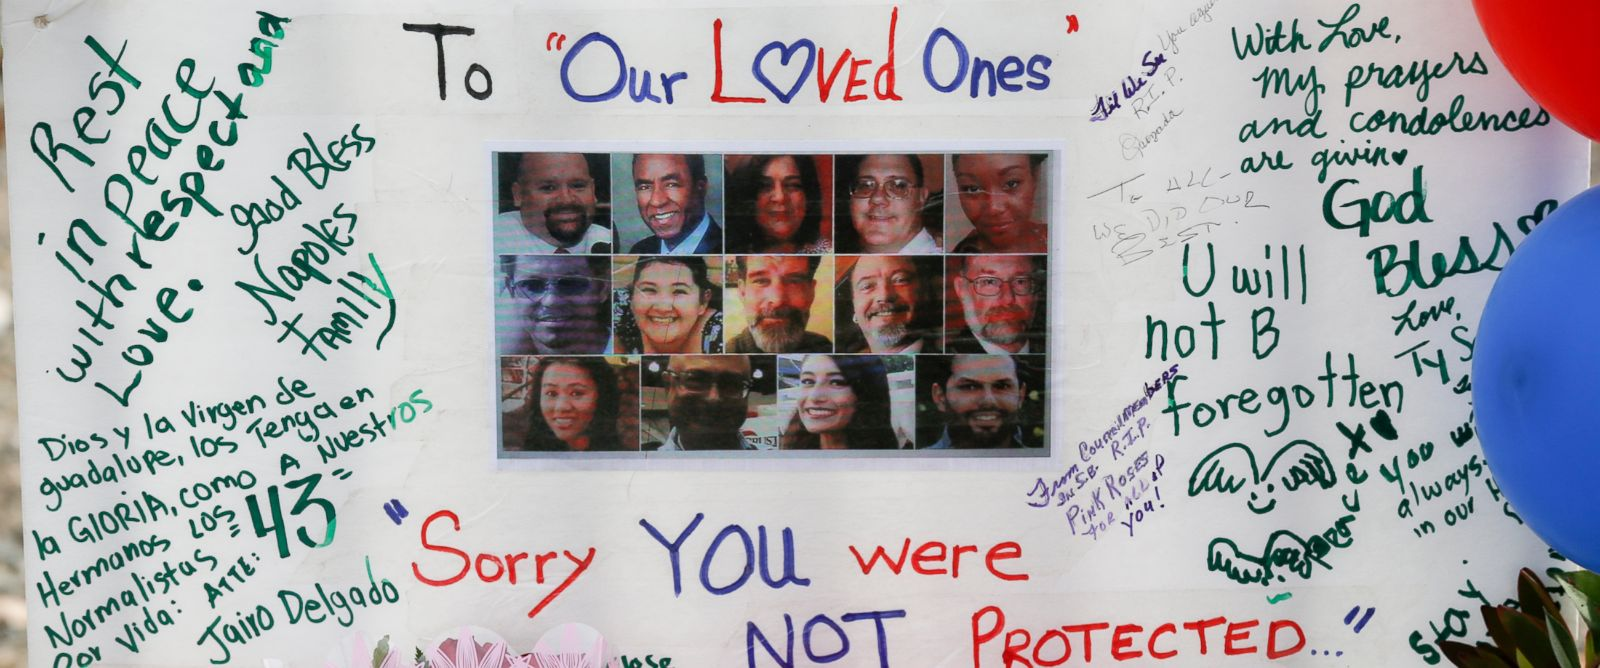 PHOTO: The victims who were killed in the mass shooting last week at the Inland Regional Center are remembered on a poster at a roadside memorial in San Bernardino, Dec. 9, 2015.